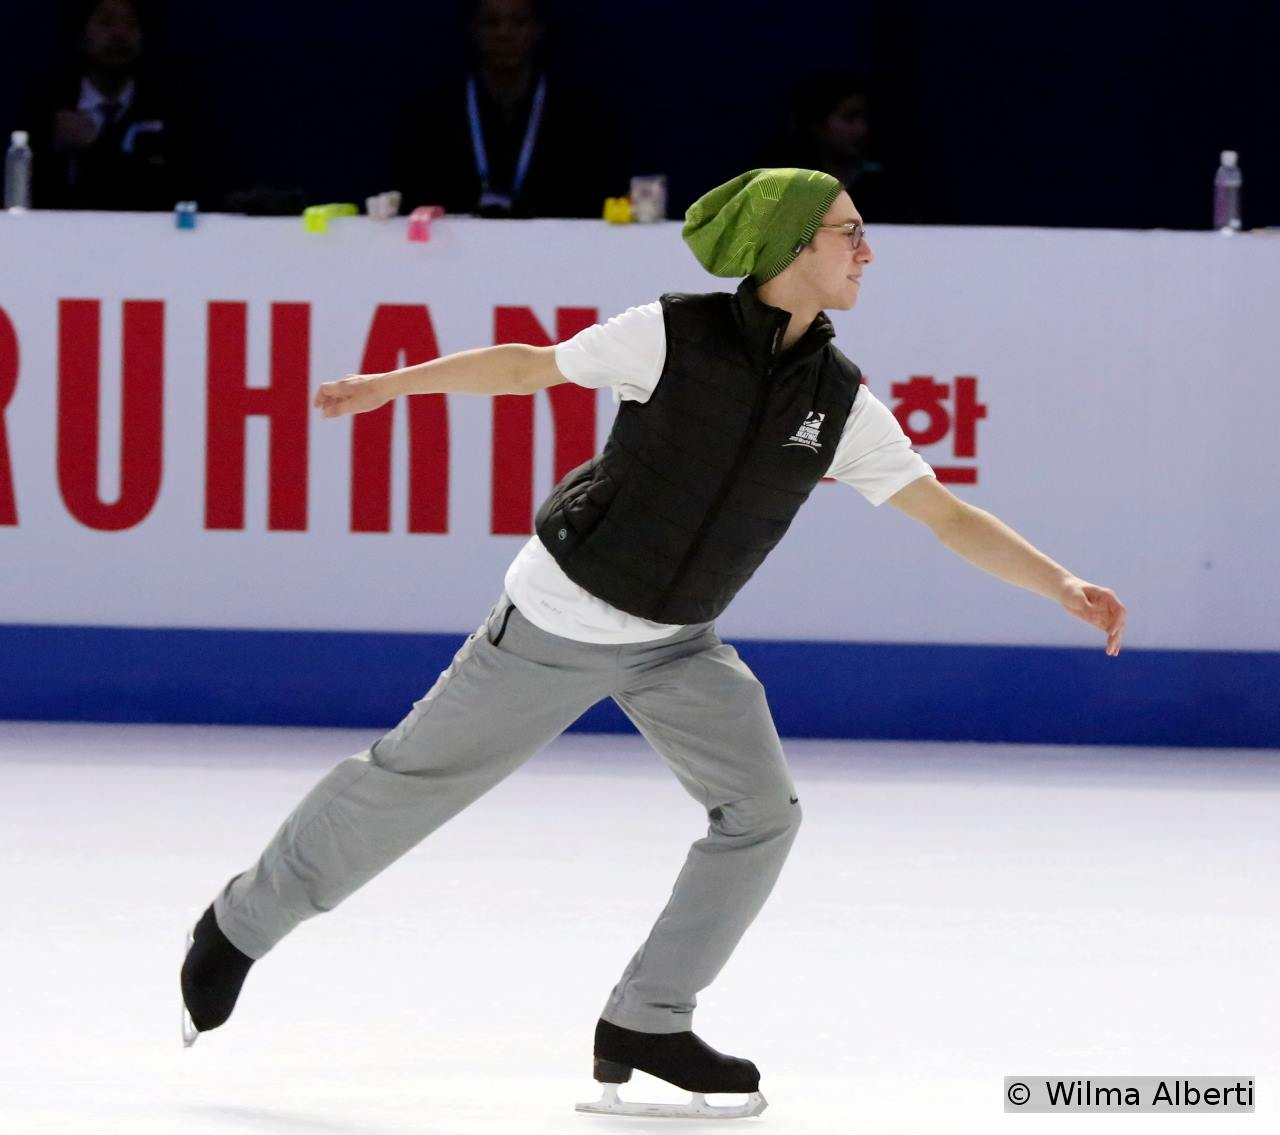 Jason Brown – and his green cap